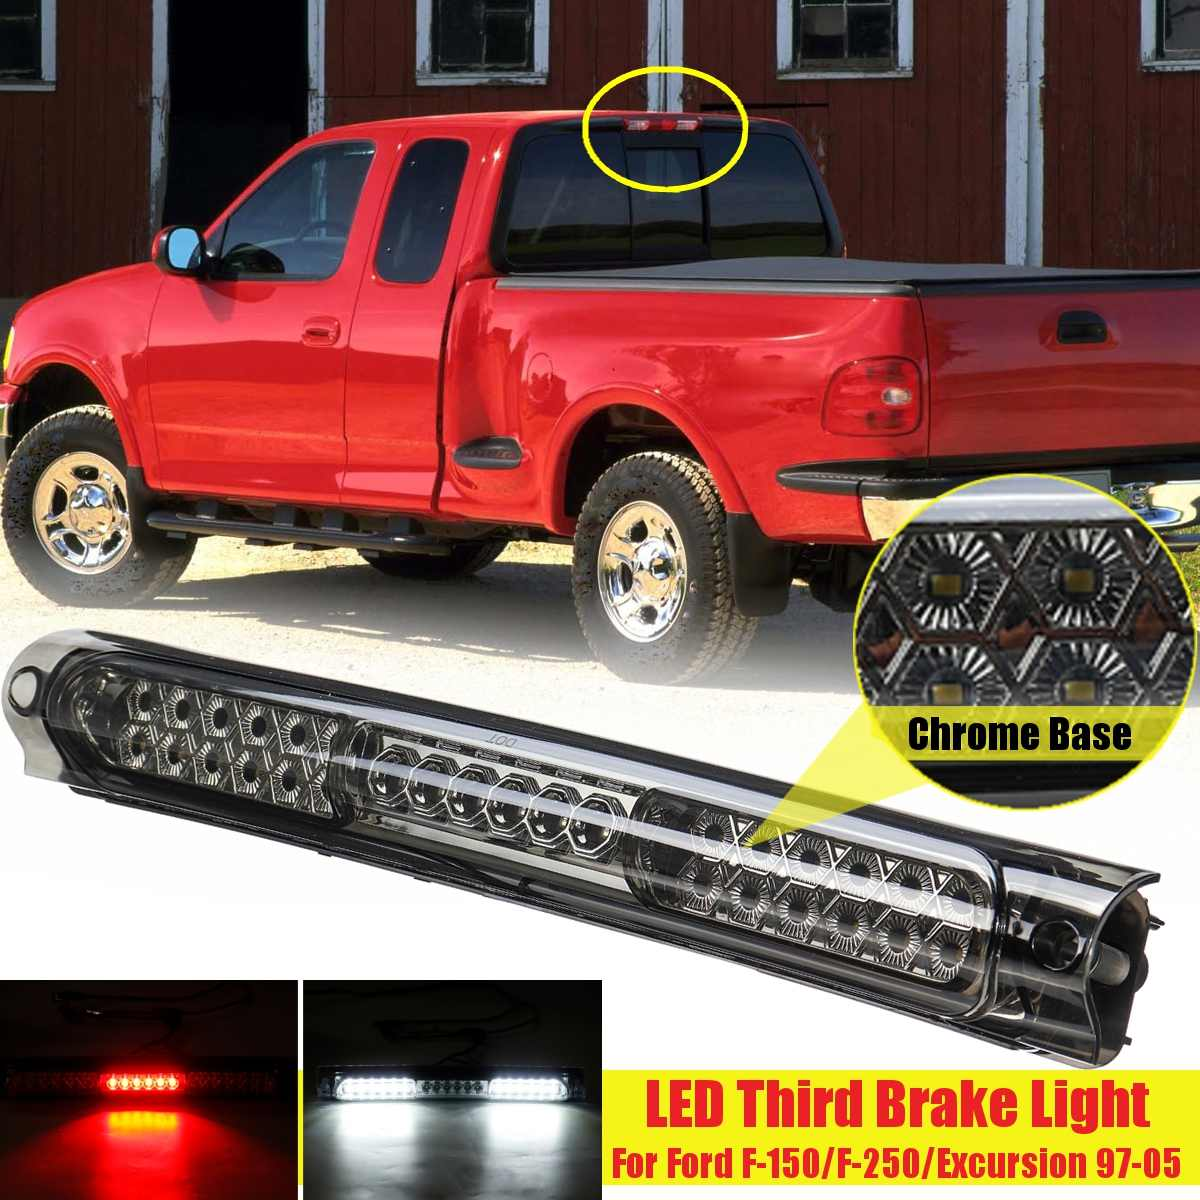 Car Led High Brake Light For Ford F-150 F-250 F150 F250 1997 1998 1999 2000 2001 2002 2003 Car Rear Taillight Third Signal